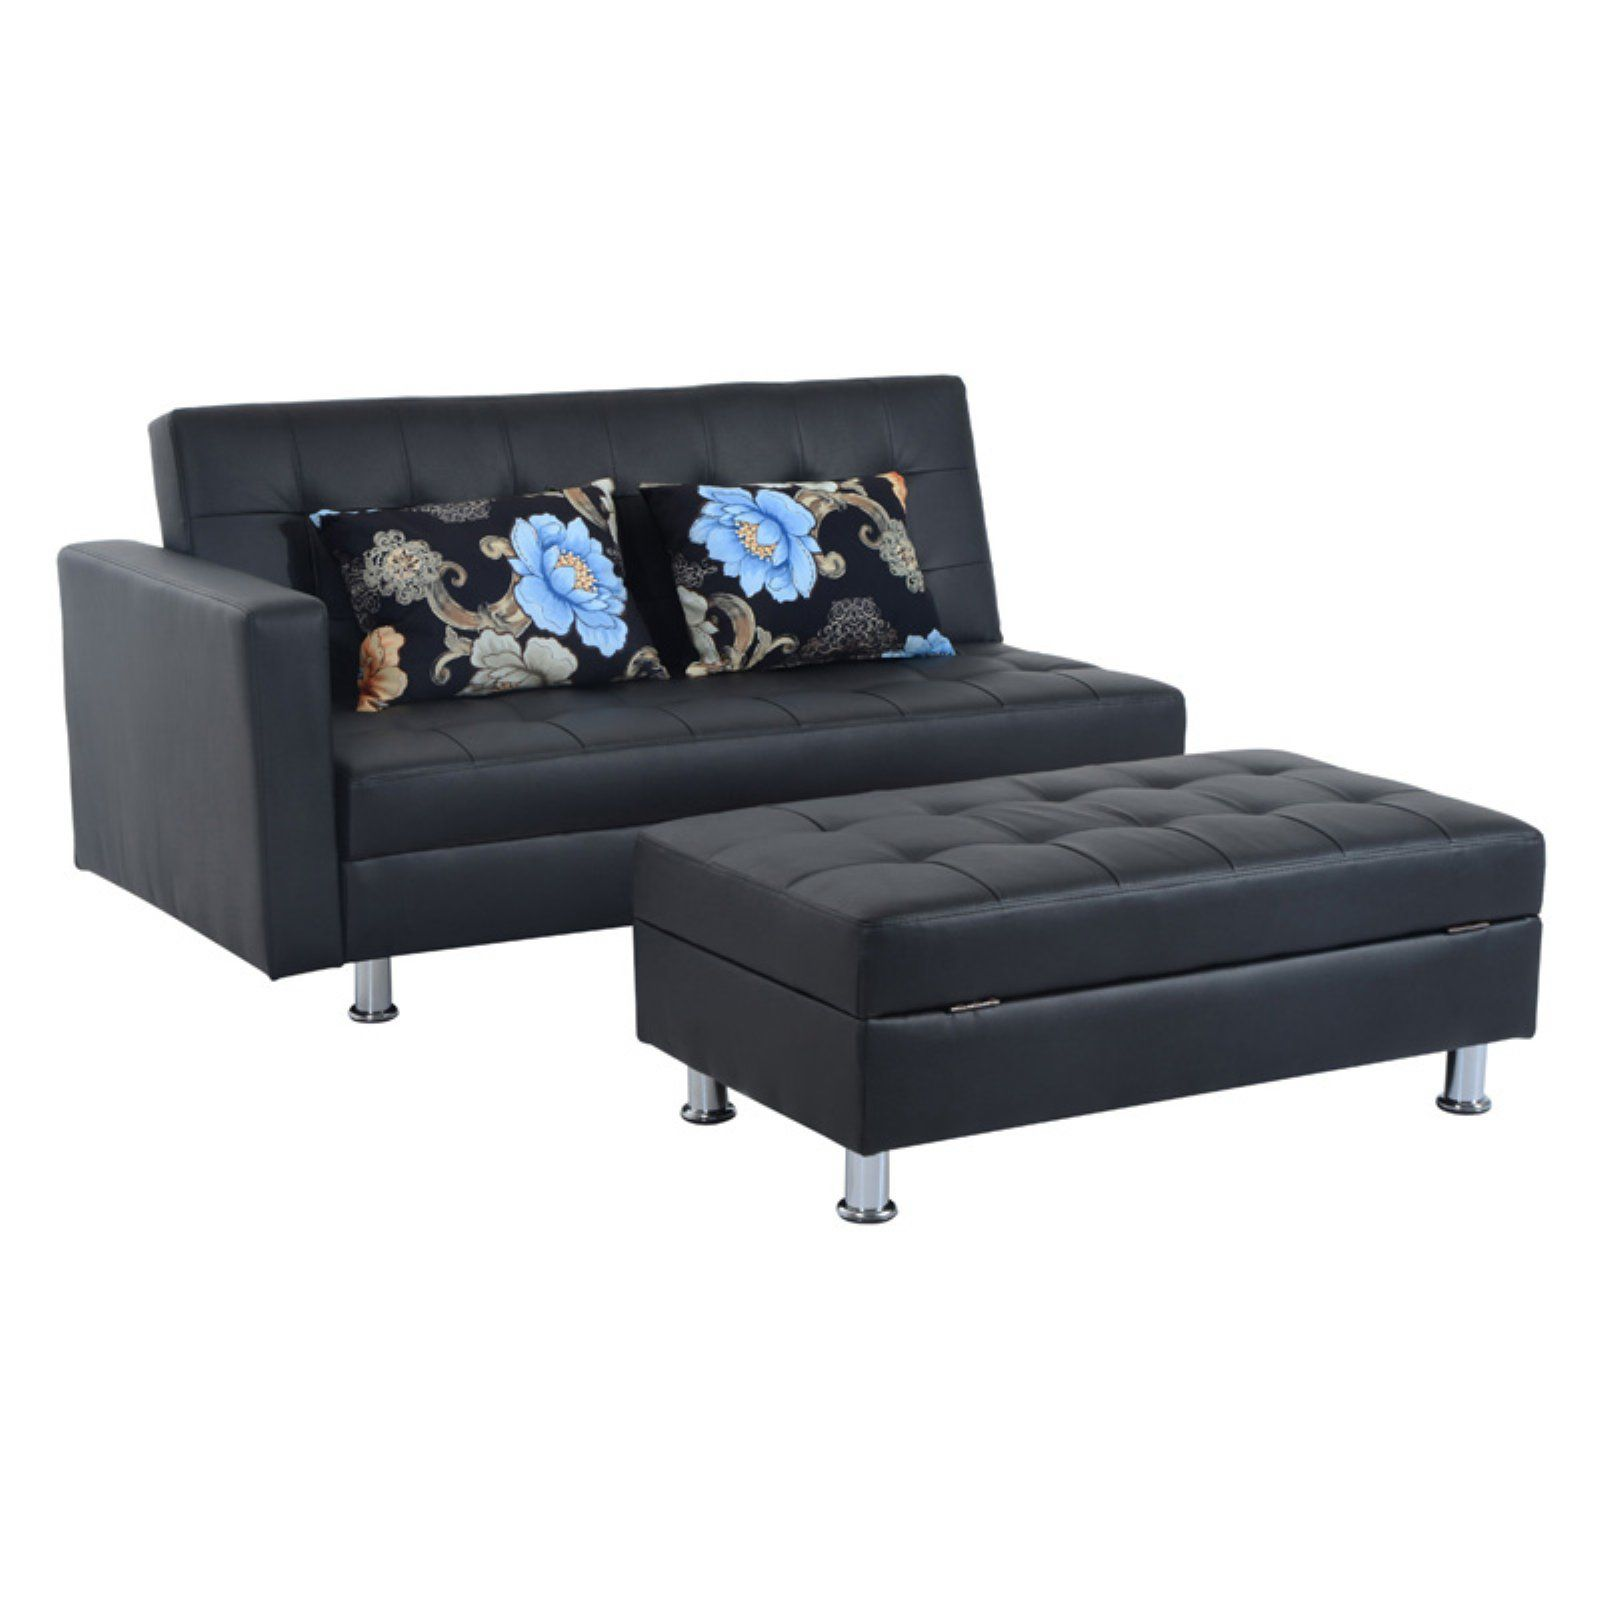 Miraculous Homcom Faux Leather Convertible Sofa Sleeper Bed With Camellatalisay Diy Chair Ideas Camellatalisaycom